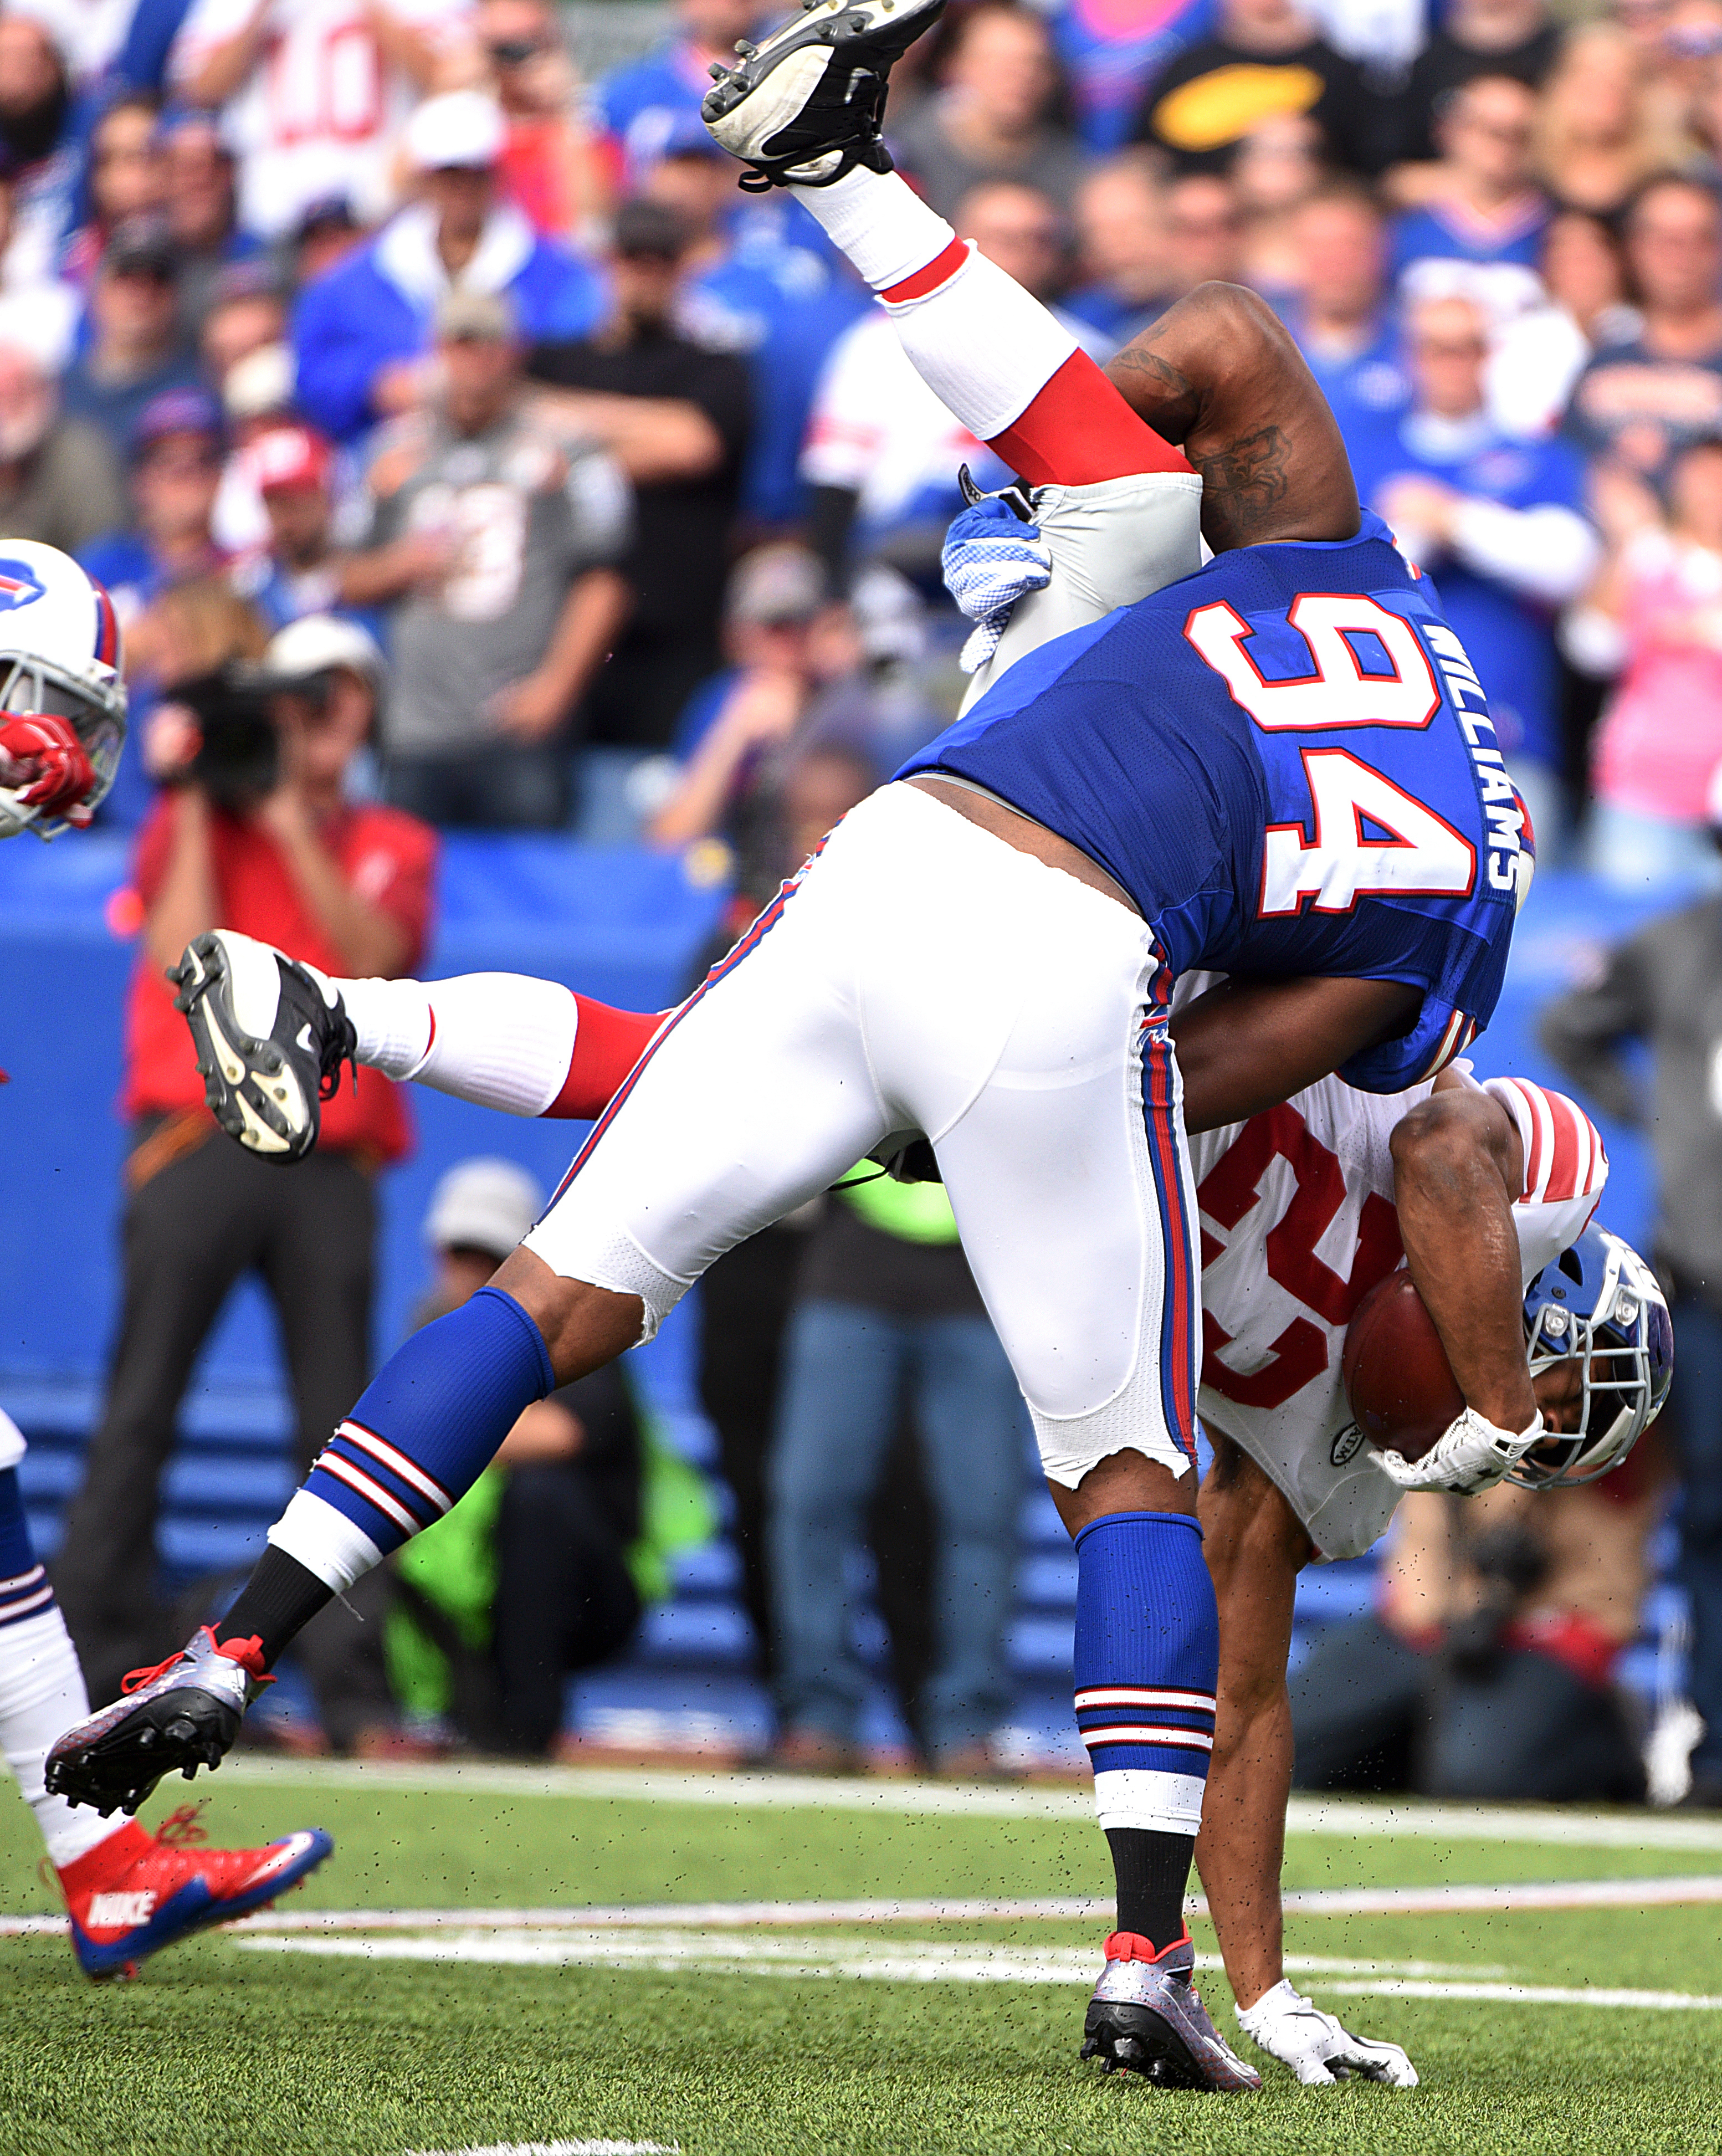 Buffalo Bills defensive end Mario Williams (94) drives New York Giants running back Rashad Jennings (23) to the ground during a tackle in the second half of an NFL football game, Sunday, Oct. 4, 2015, in Orchard Park, N.Y. (AP Photo/Gary Wiepert)